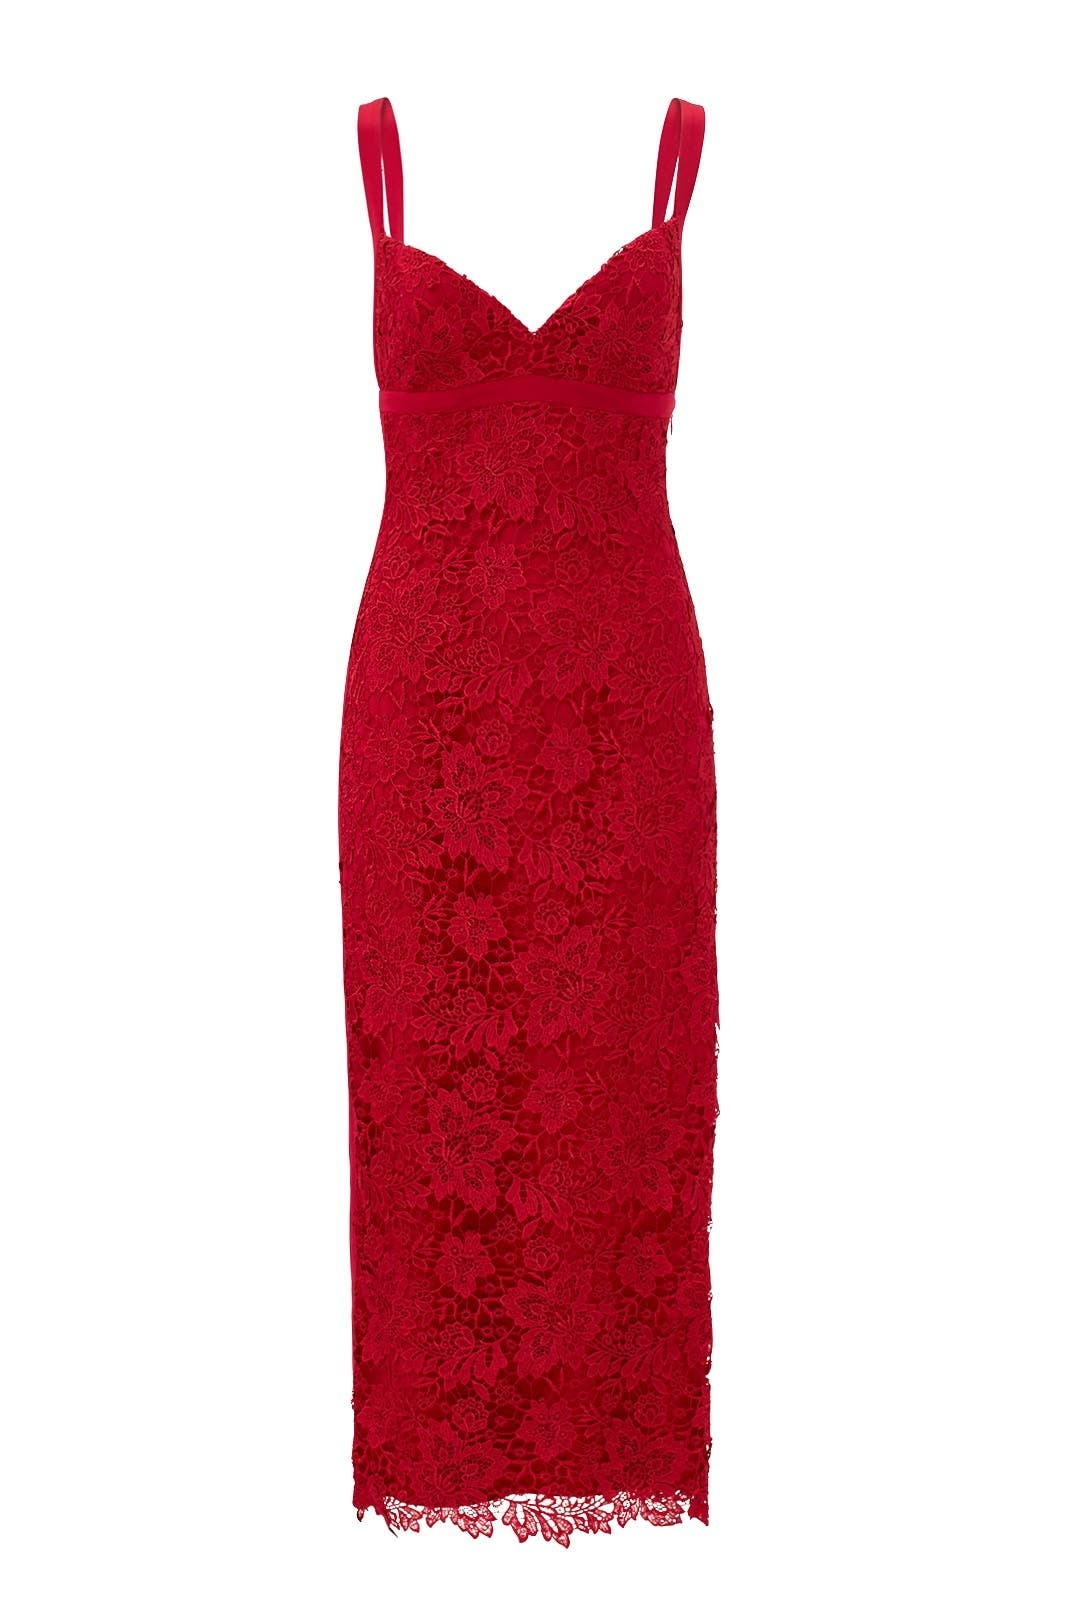 Scarlet Candlelight Dress by ML Monique Lhuillier for $65 - $85 ...